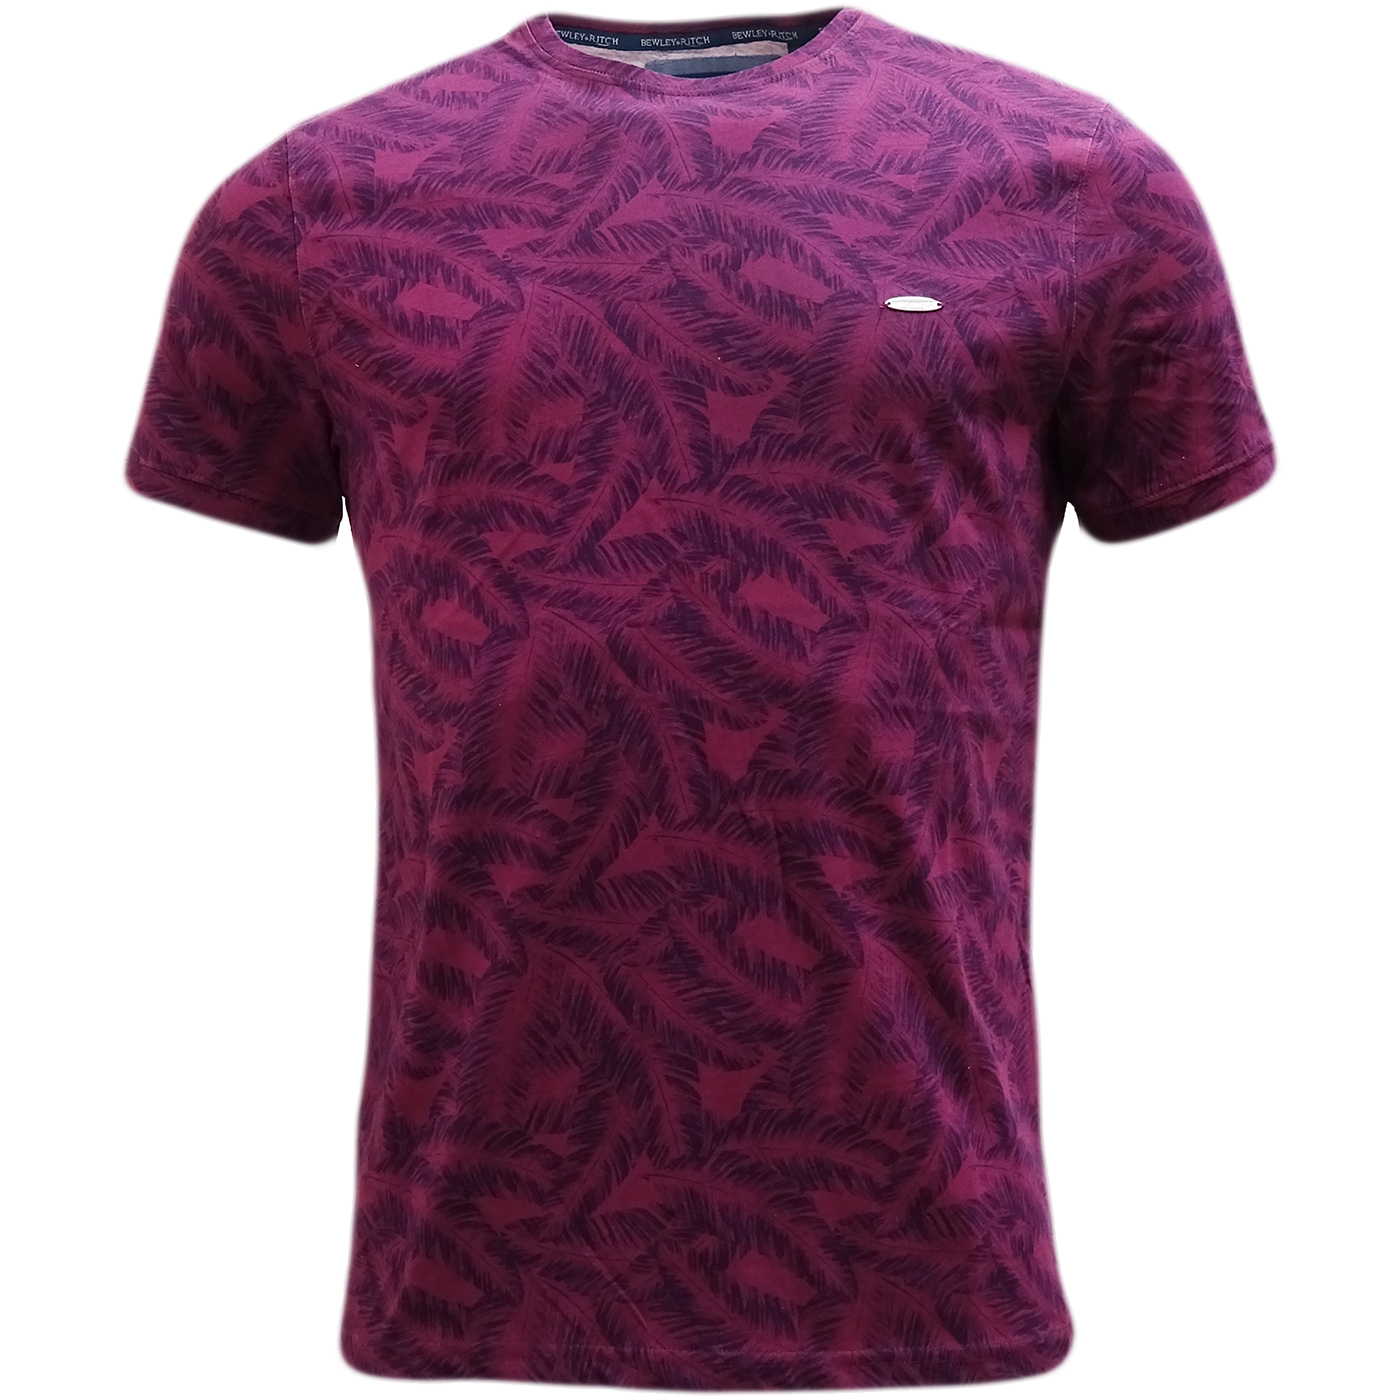 Bewley & Ritch Purple All Over Leaf Design T-Shirt